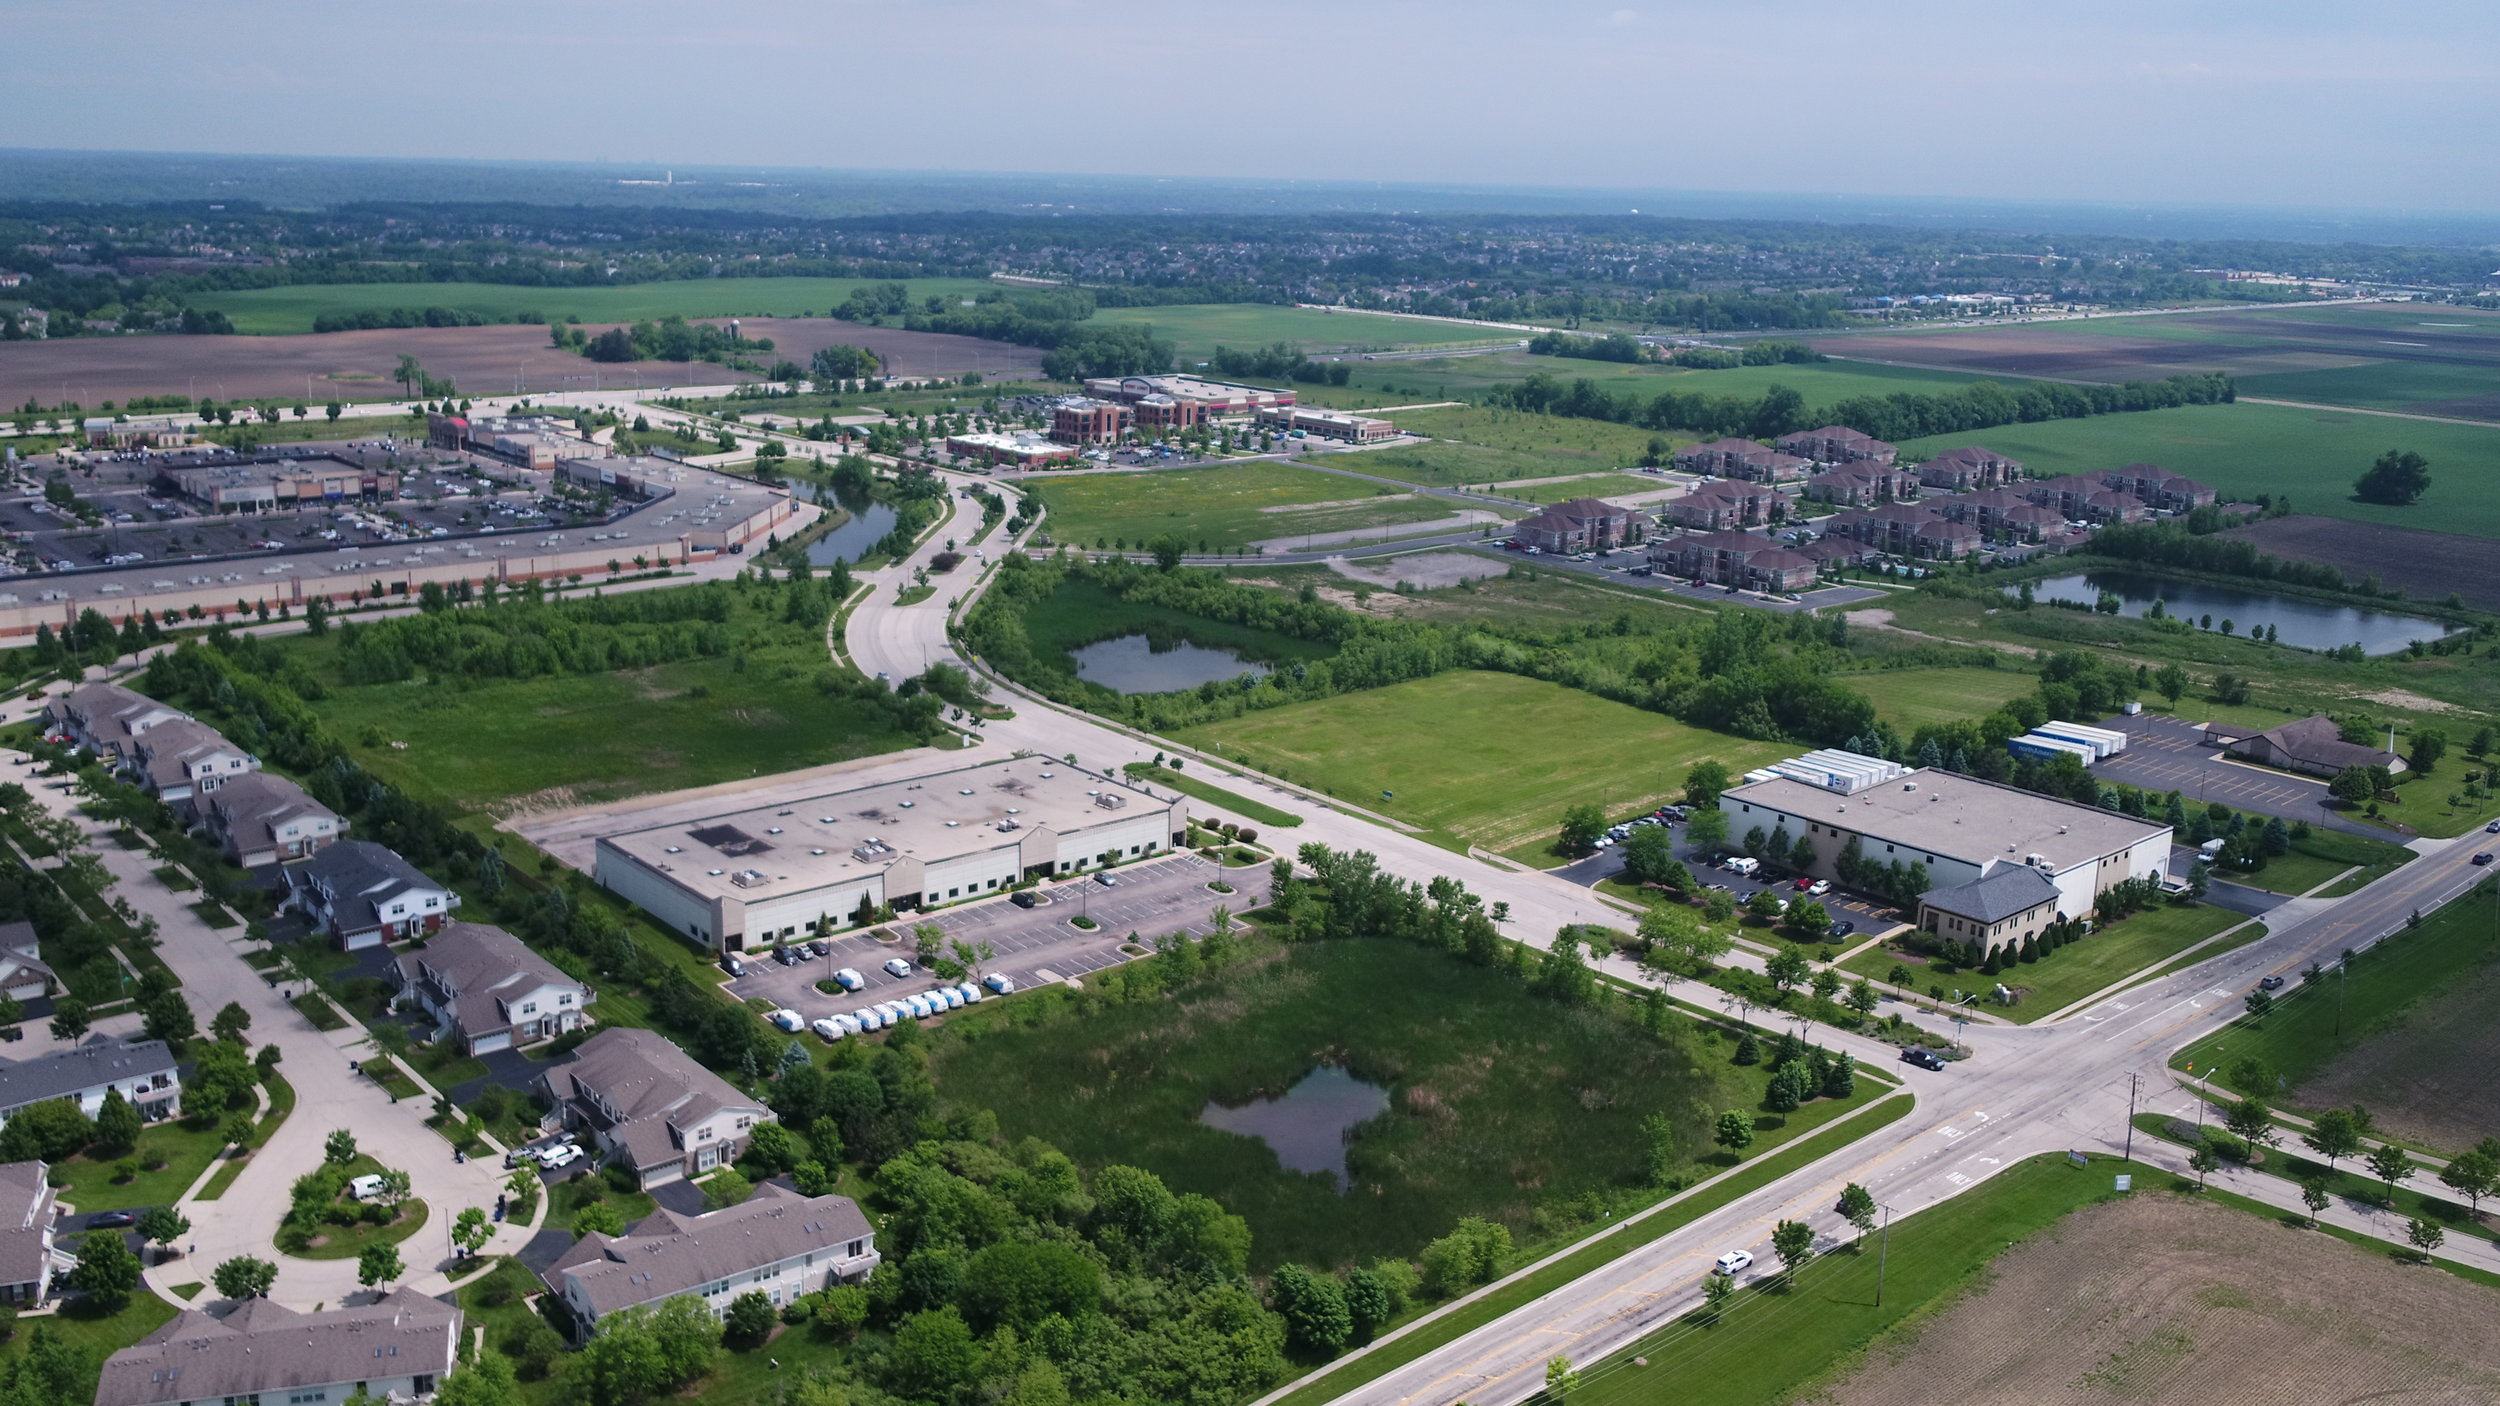 ALGONQUIN CORPORATE CAMPUS - This growing development opportunity has great access to Algonquin's amenities thanks to its location on Randall Road and Longmeadow Parkway and is close to Chicago O'Hare International Airport, close to I-90 and close to home.